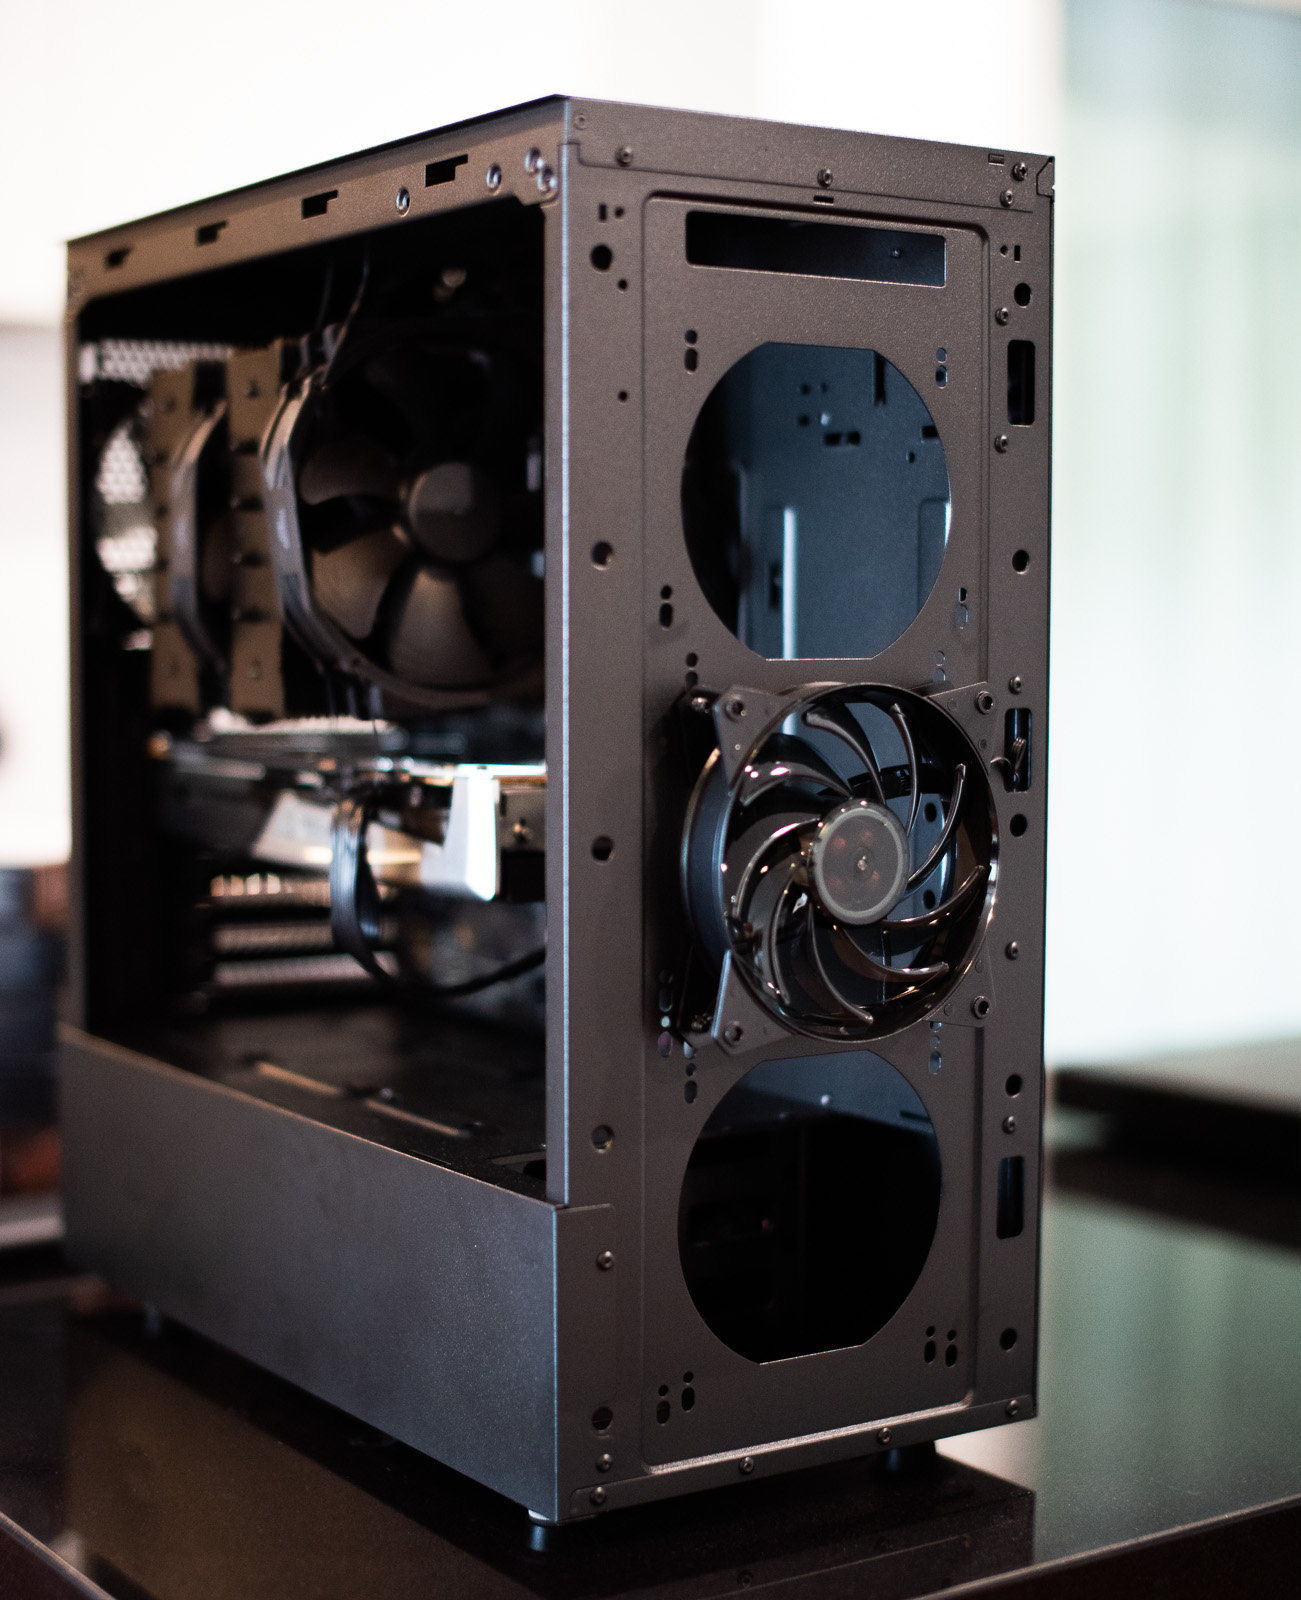 Cooler Master Masterbox NR600 without ODD